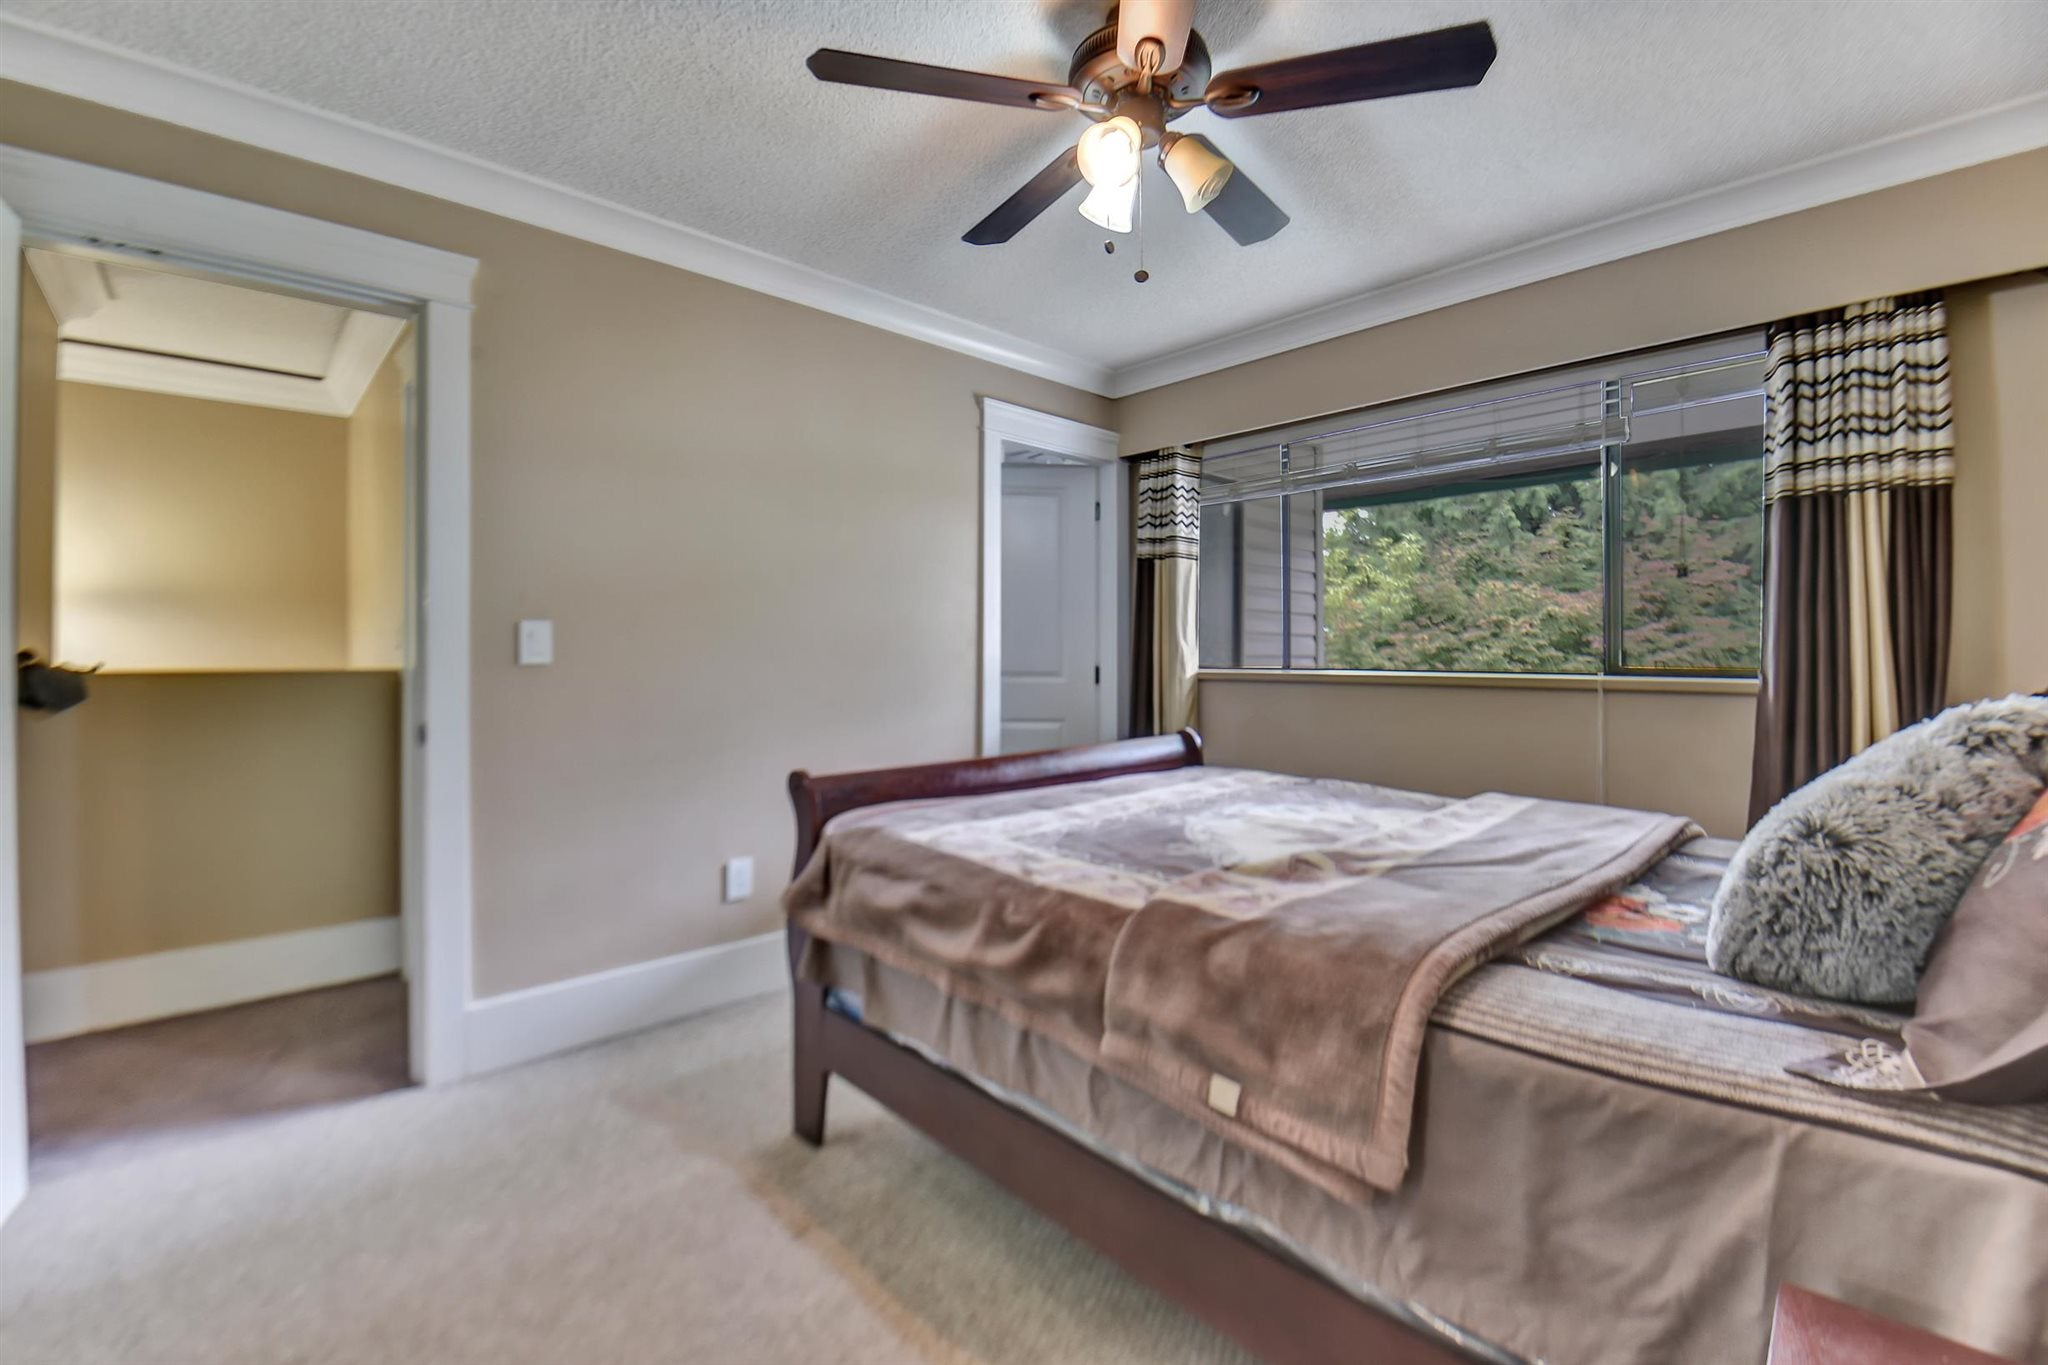 31 12045 93A AVENUE - Queen Mary Park Surrey Townhouse for sale, 4 Bedrooms (R2603608) - #16